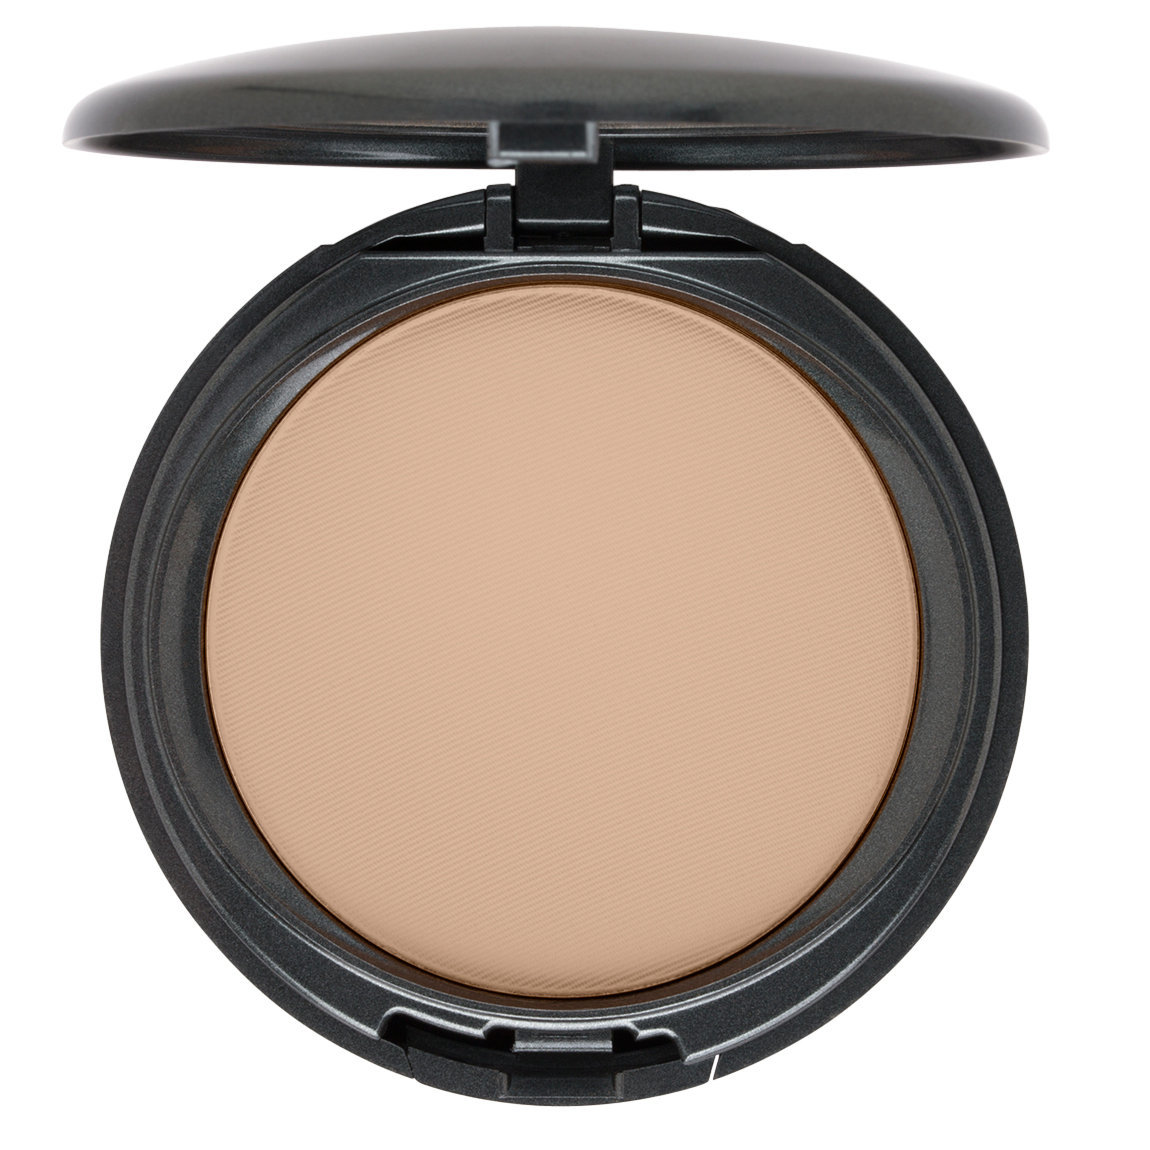 COVER | FX Pressed Mineral Foundation N20 alternative view 1 - product swatch.